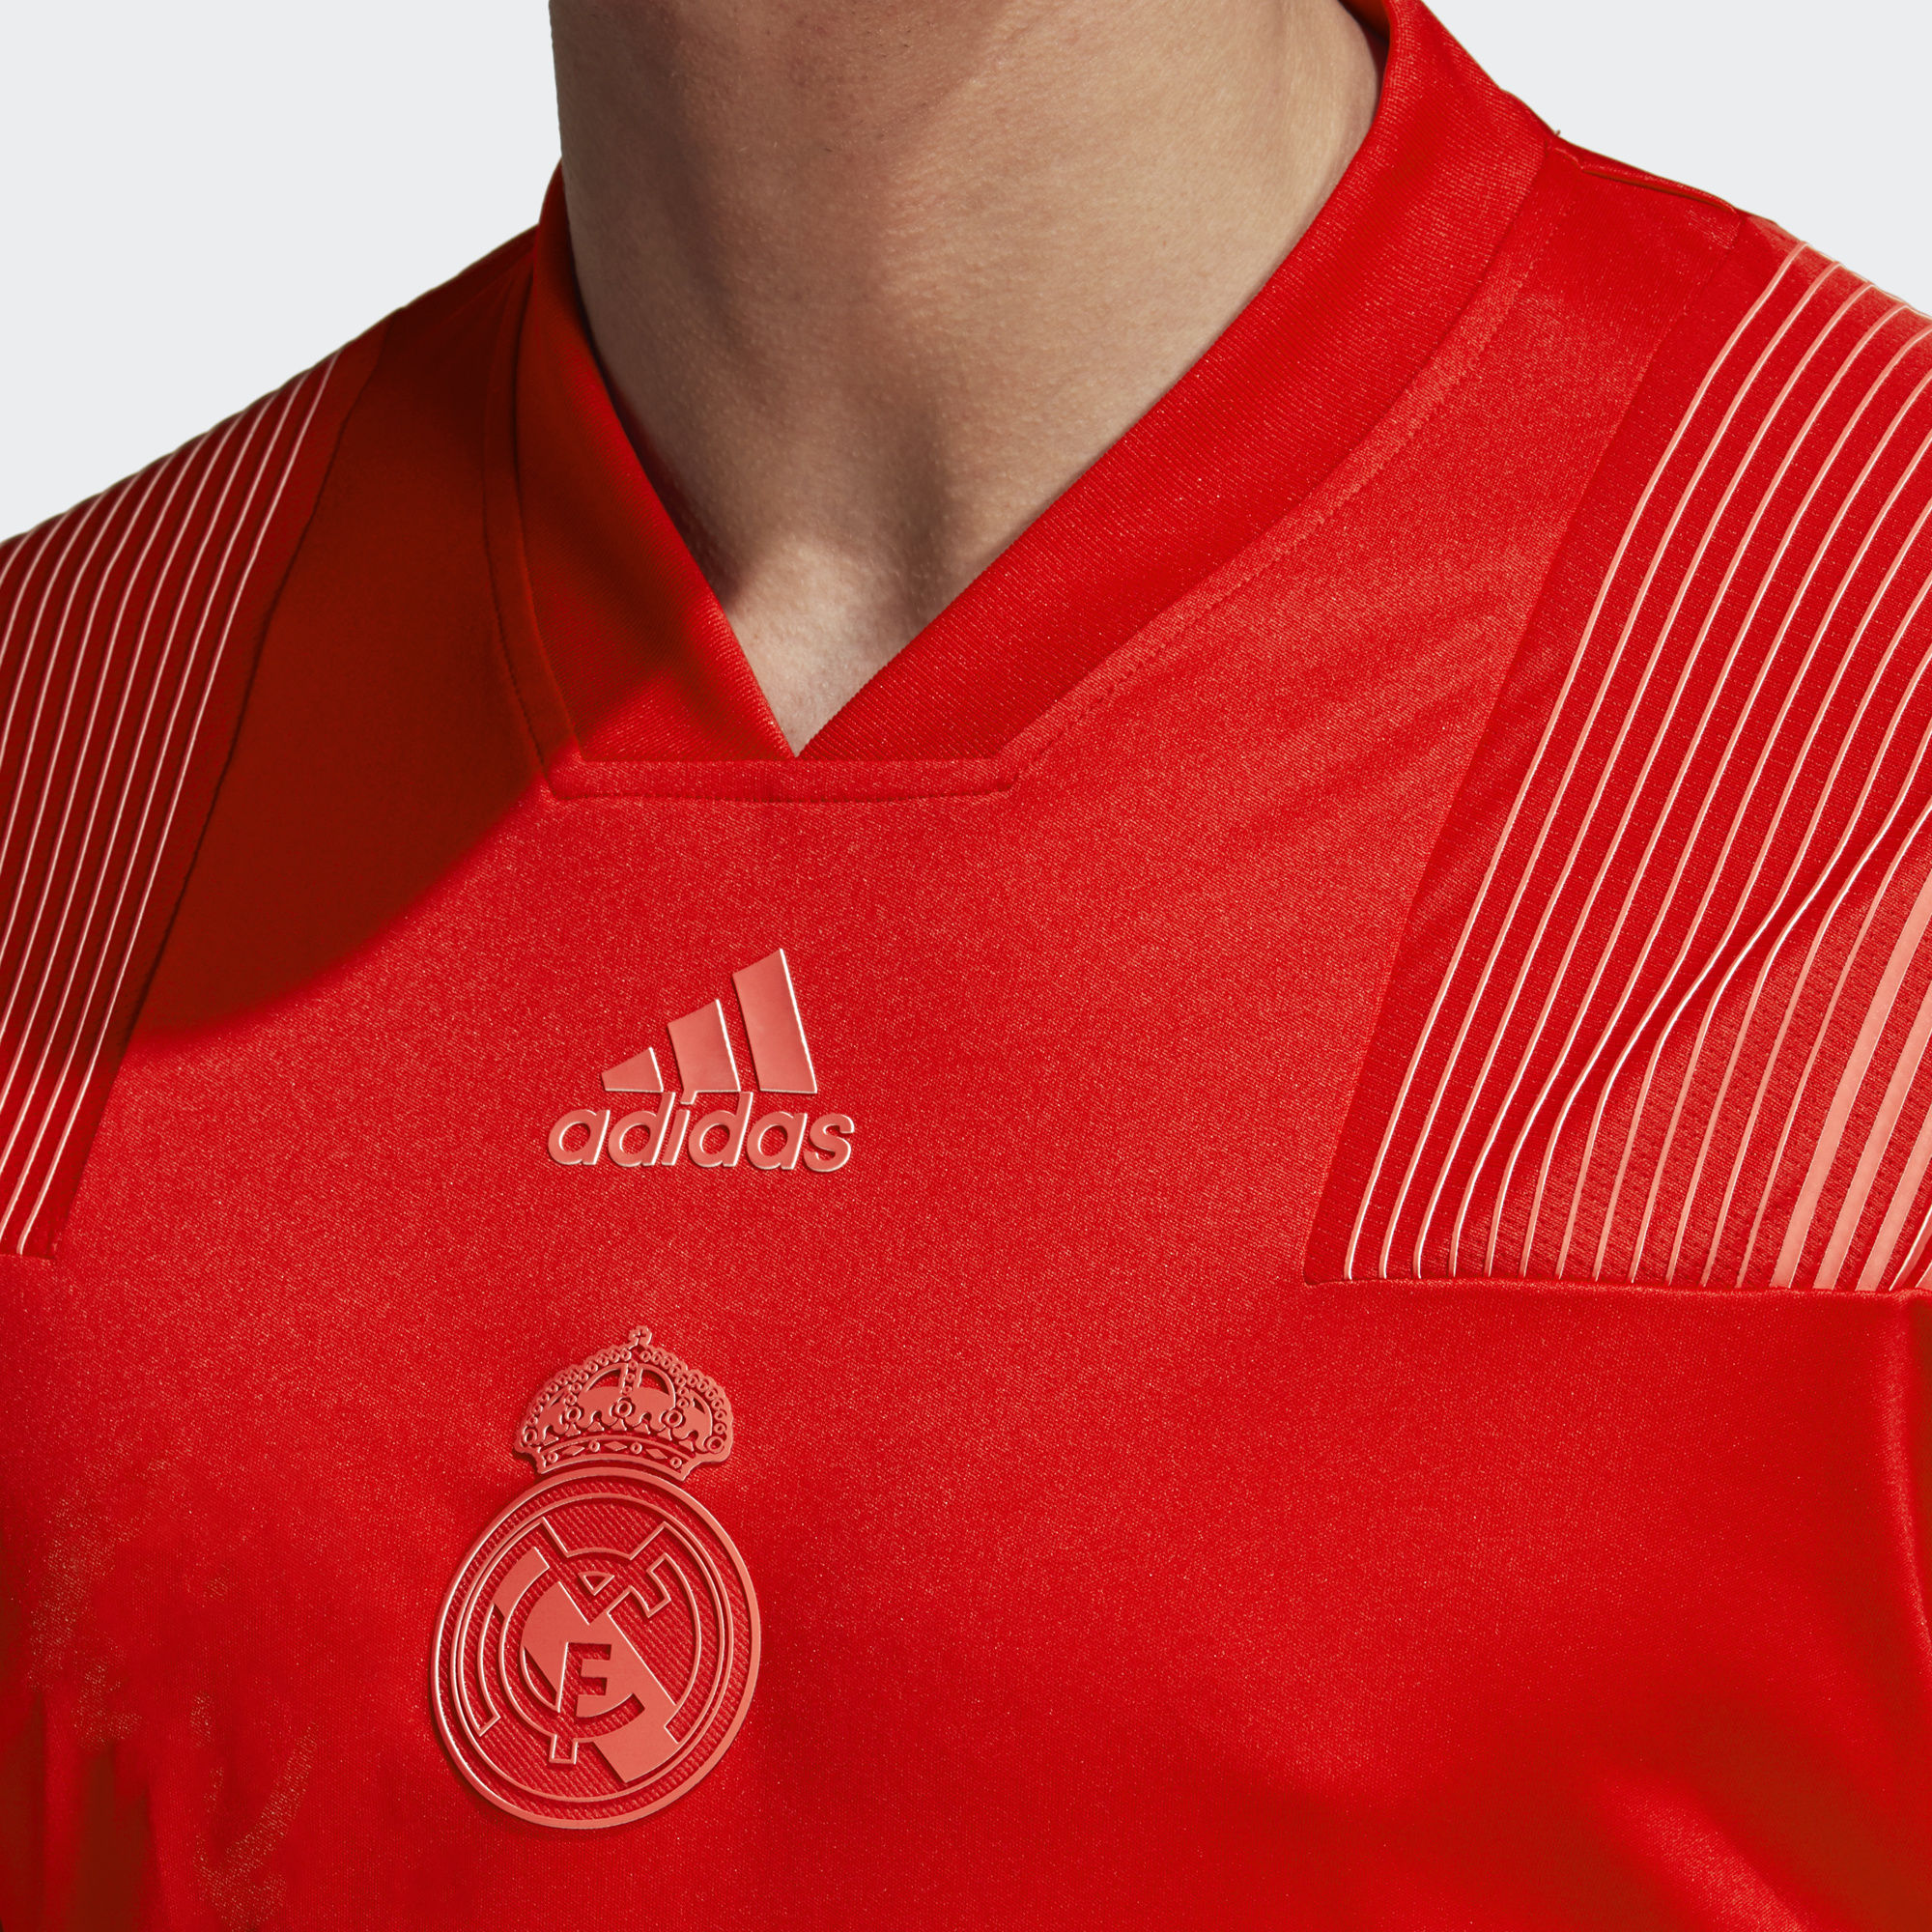 quality design e6881 55bed adidas Real Madrid Icon Tee - Soccer Shop Real Madrid ...